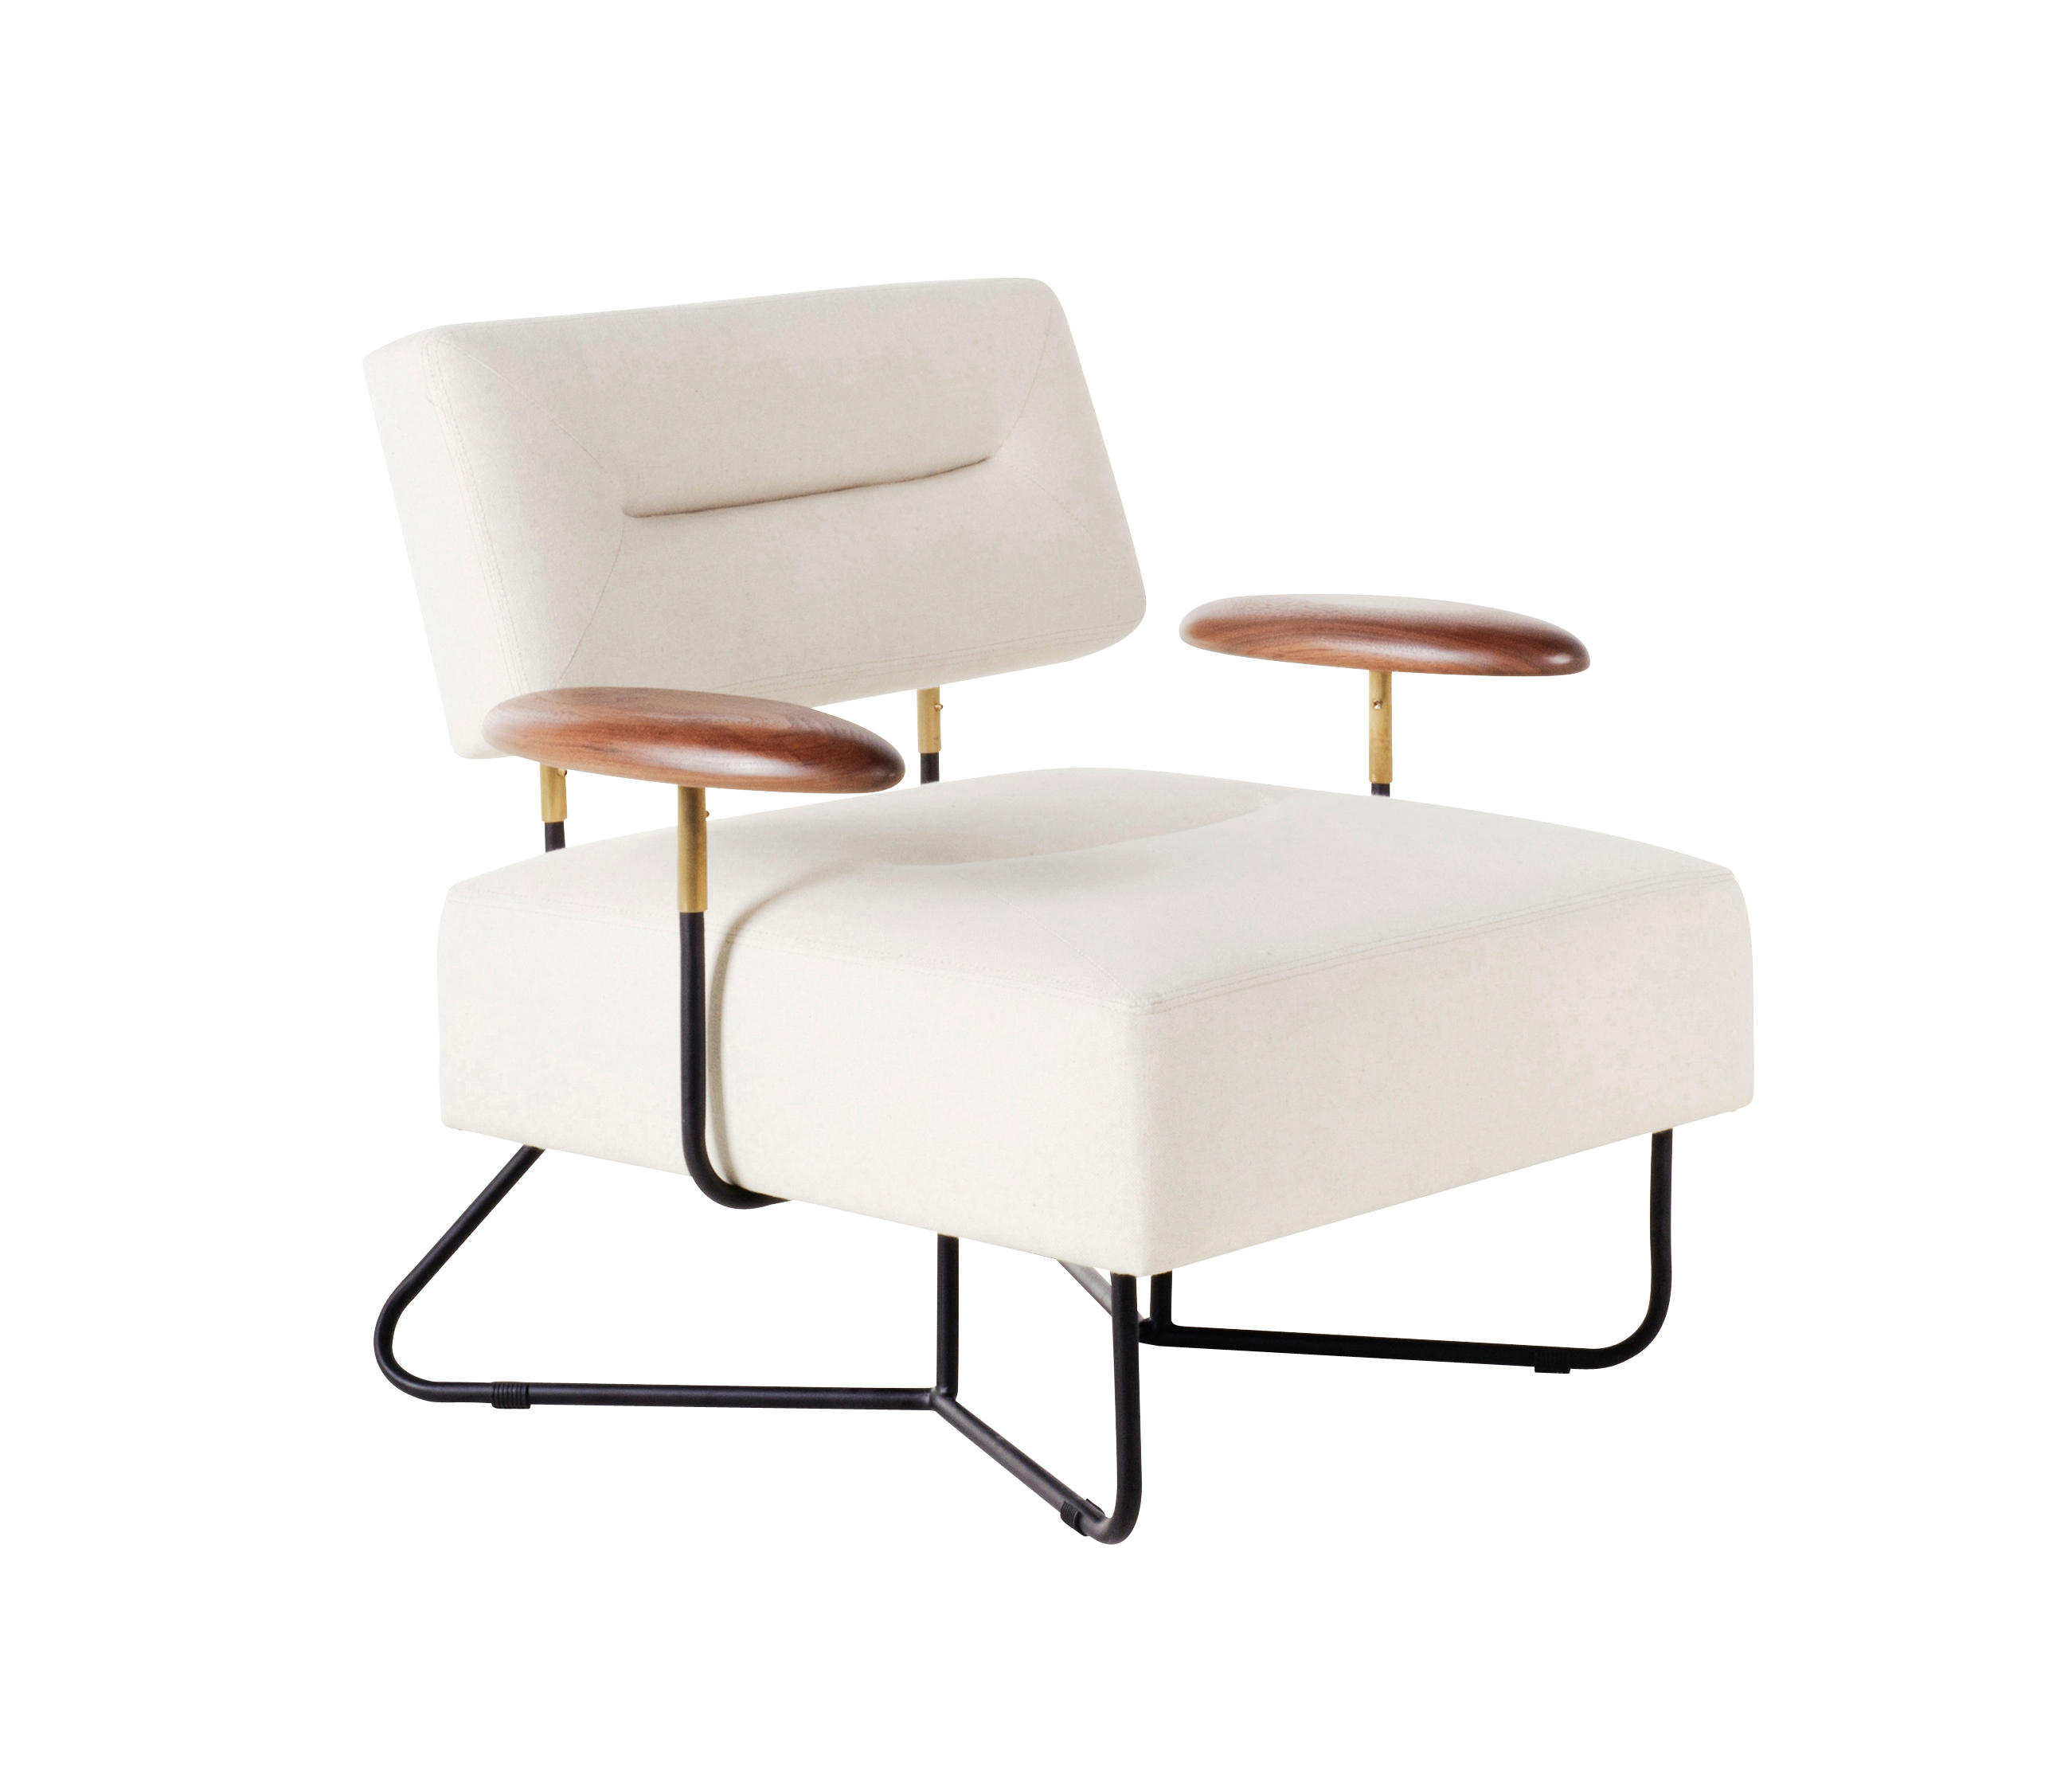 QT CHAIR - Armchairs from Stellar Works | Architonic